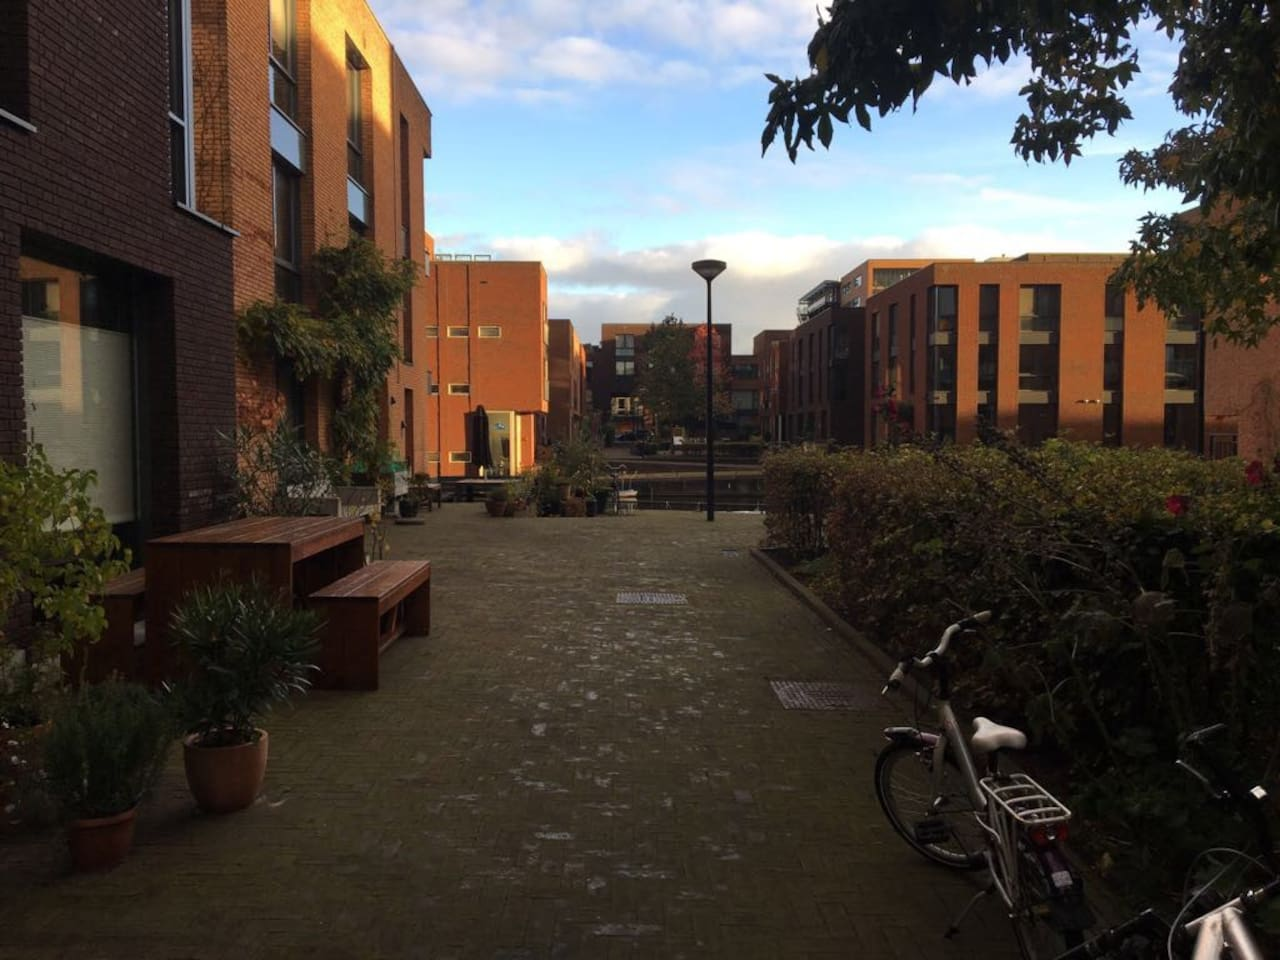 Courtyard, no cars!